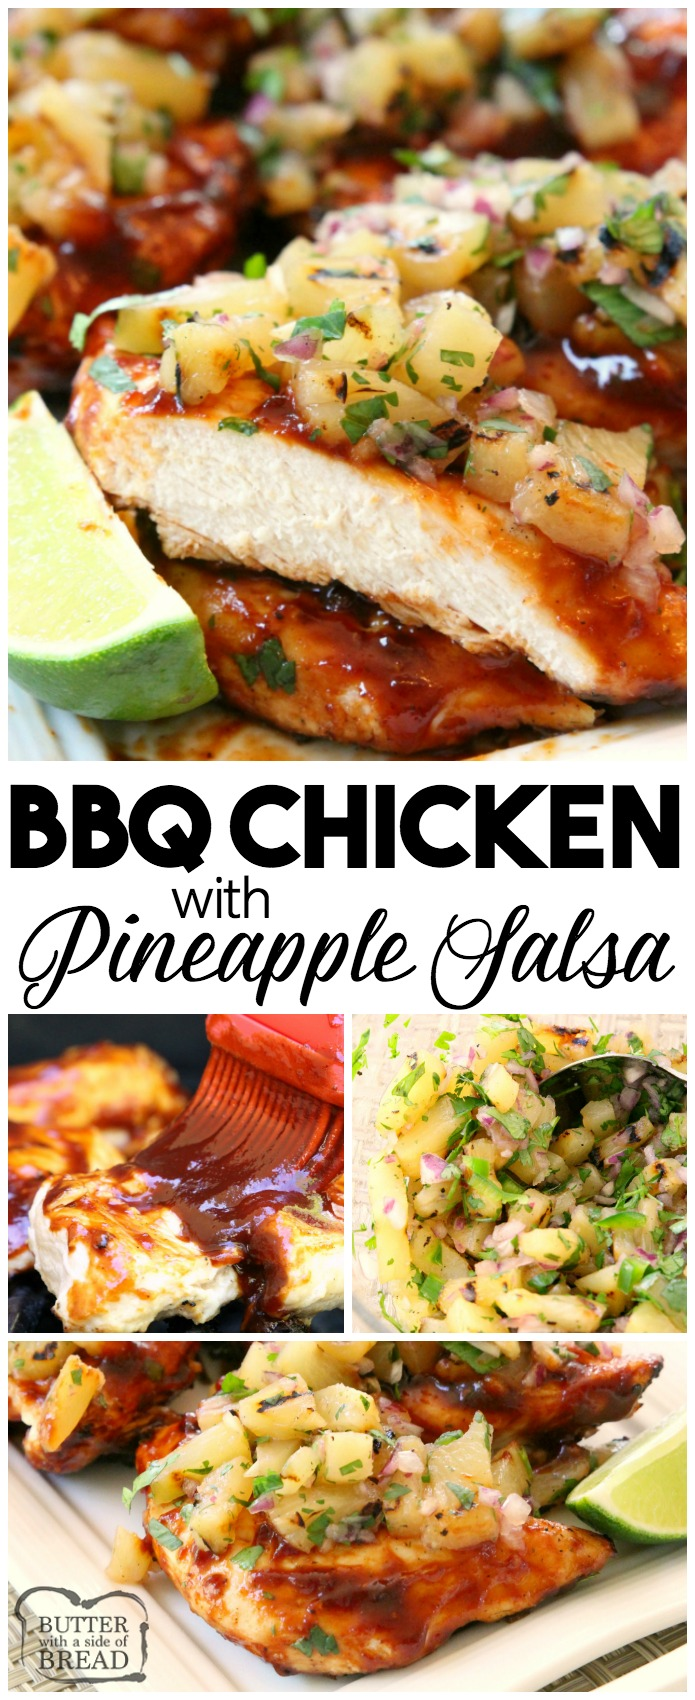 Grilled BBQ Chicken with Pineapple Salsa is made by smothering grilled chicken with thick & flavorful bbq sauce then topping it with a delicious pineapple salsa. Perfect for weeknight dinners or weekend get-togethers, the pineapple salsa pairs perfectly with the tangy grilled barbecue chicken. #Grill #Chicken #bbq #recipe from Butter With A Side of Bread #pineapple #salsa #grilling #barbecue